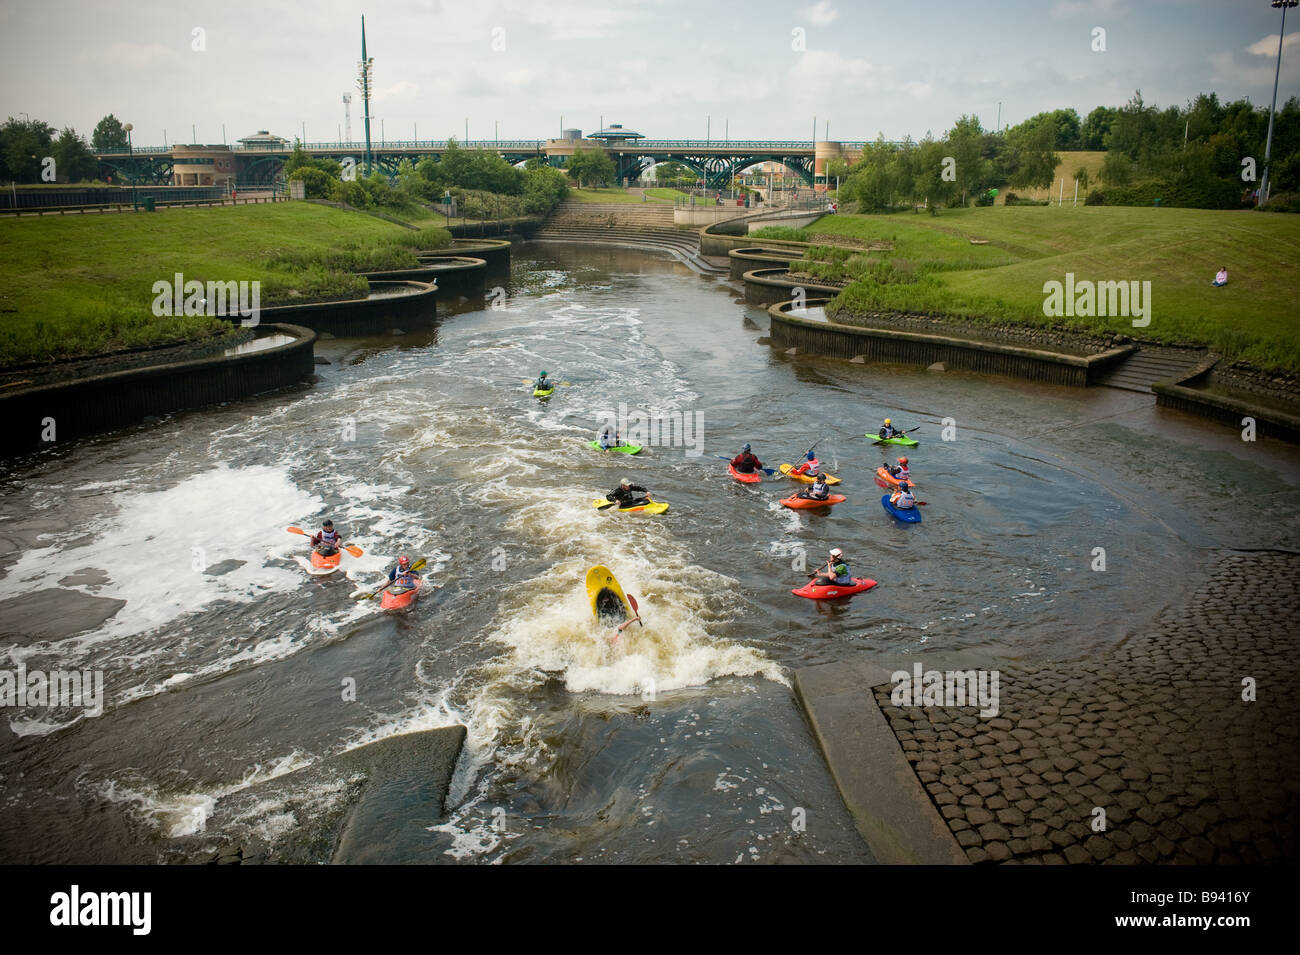 Kayak training at Tees Side white water centre River Tees UK - Stock Image